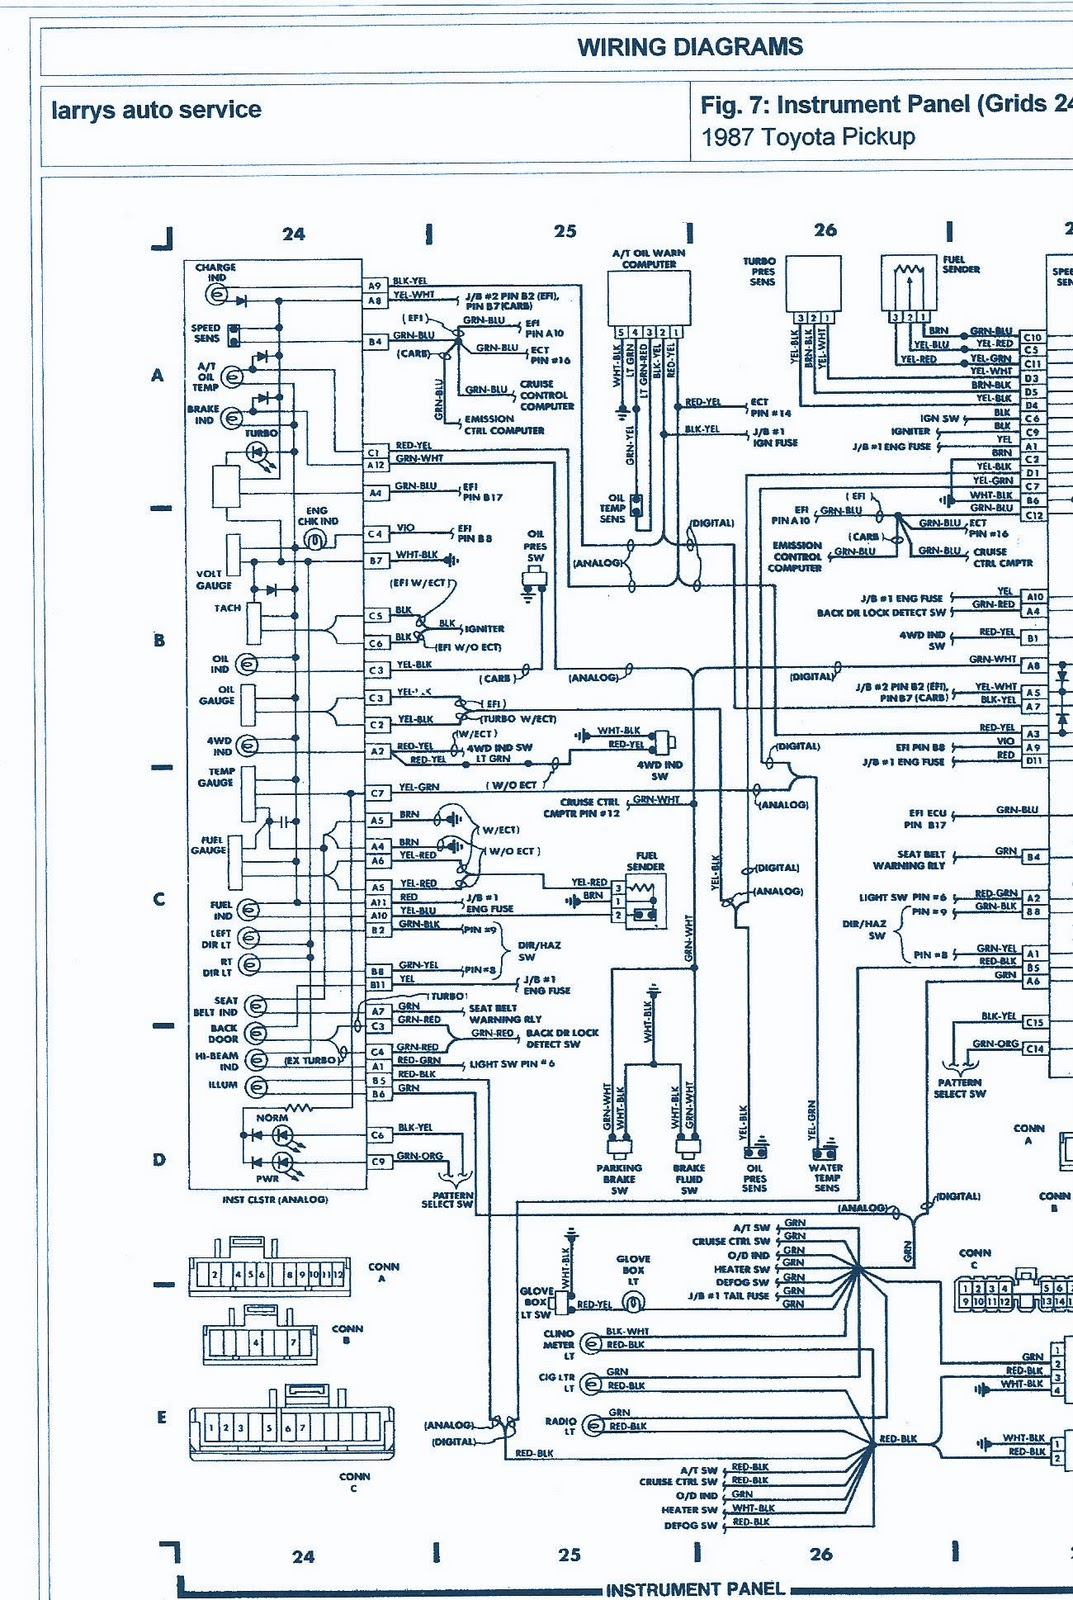 DIAGRAM] 1986 Toyota Truck Wiring Diagram FULL Version HD Quality Wiring  Diagram - VENNDIAGRAMONLINE.NUITDEBOUTAIX.FR